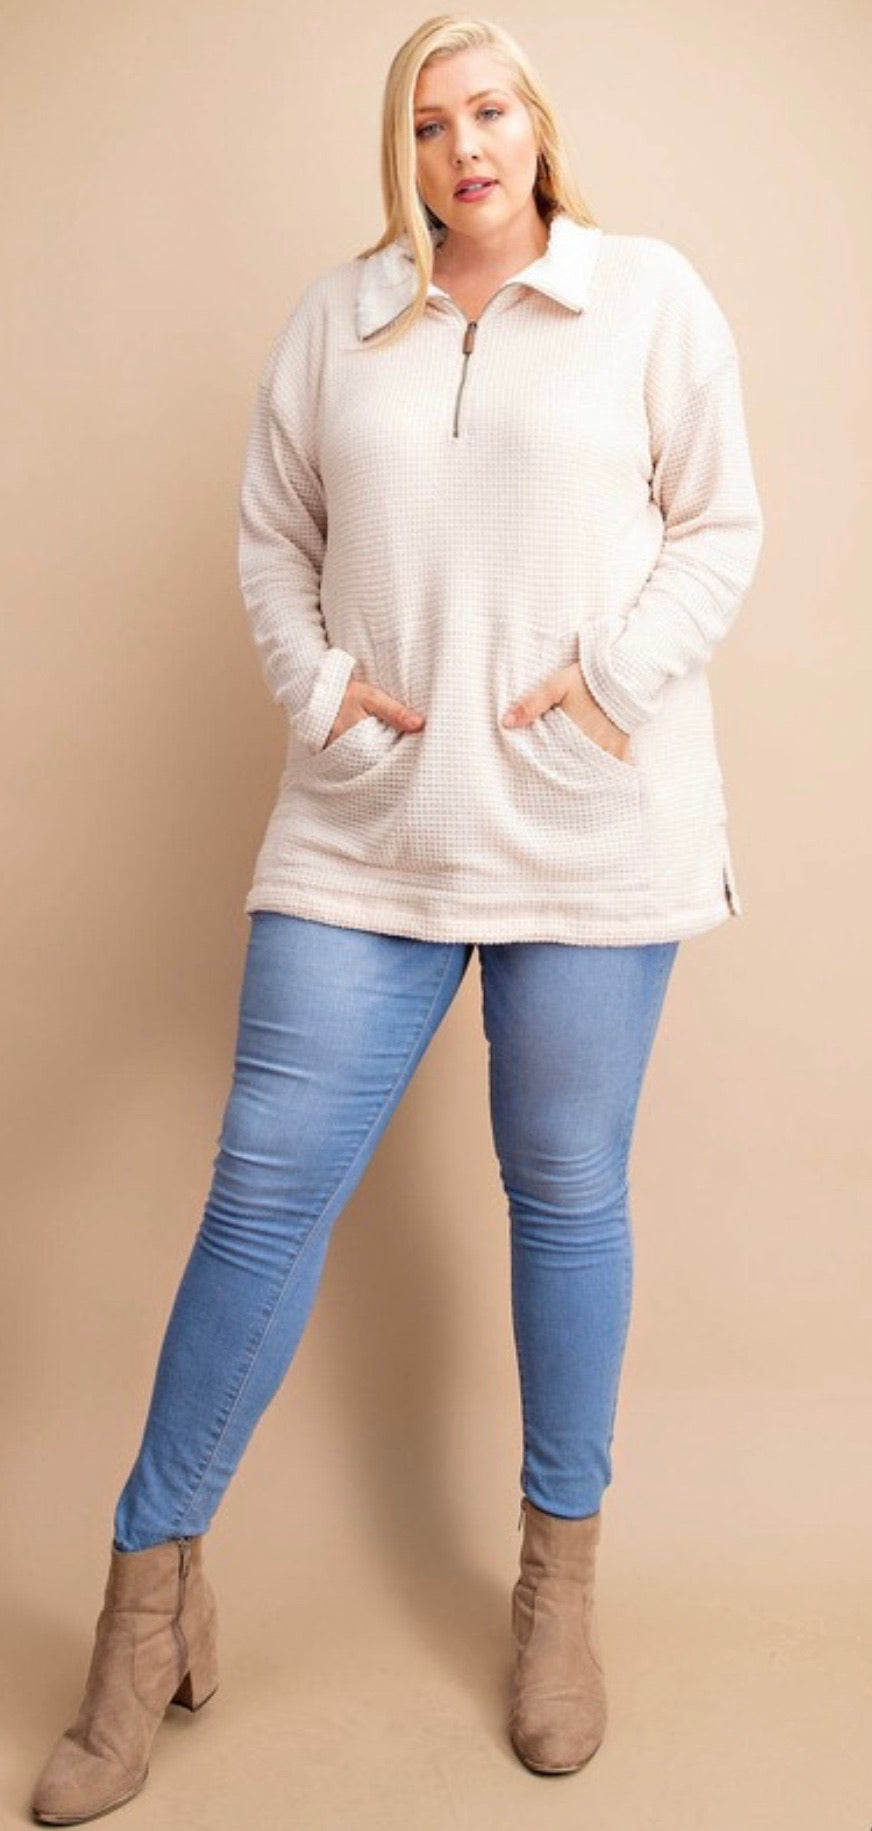 Reversible textured knit top with front zipper